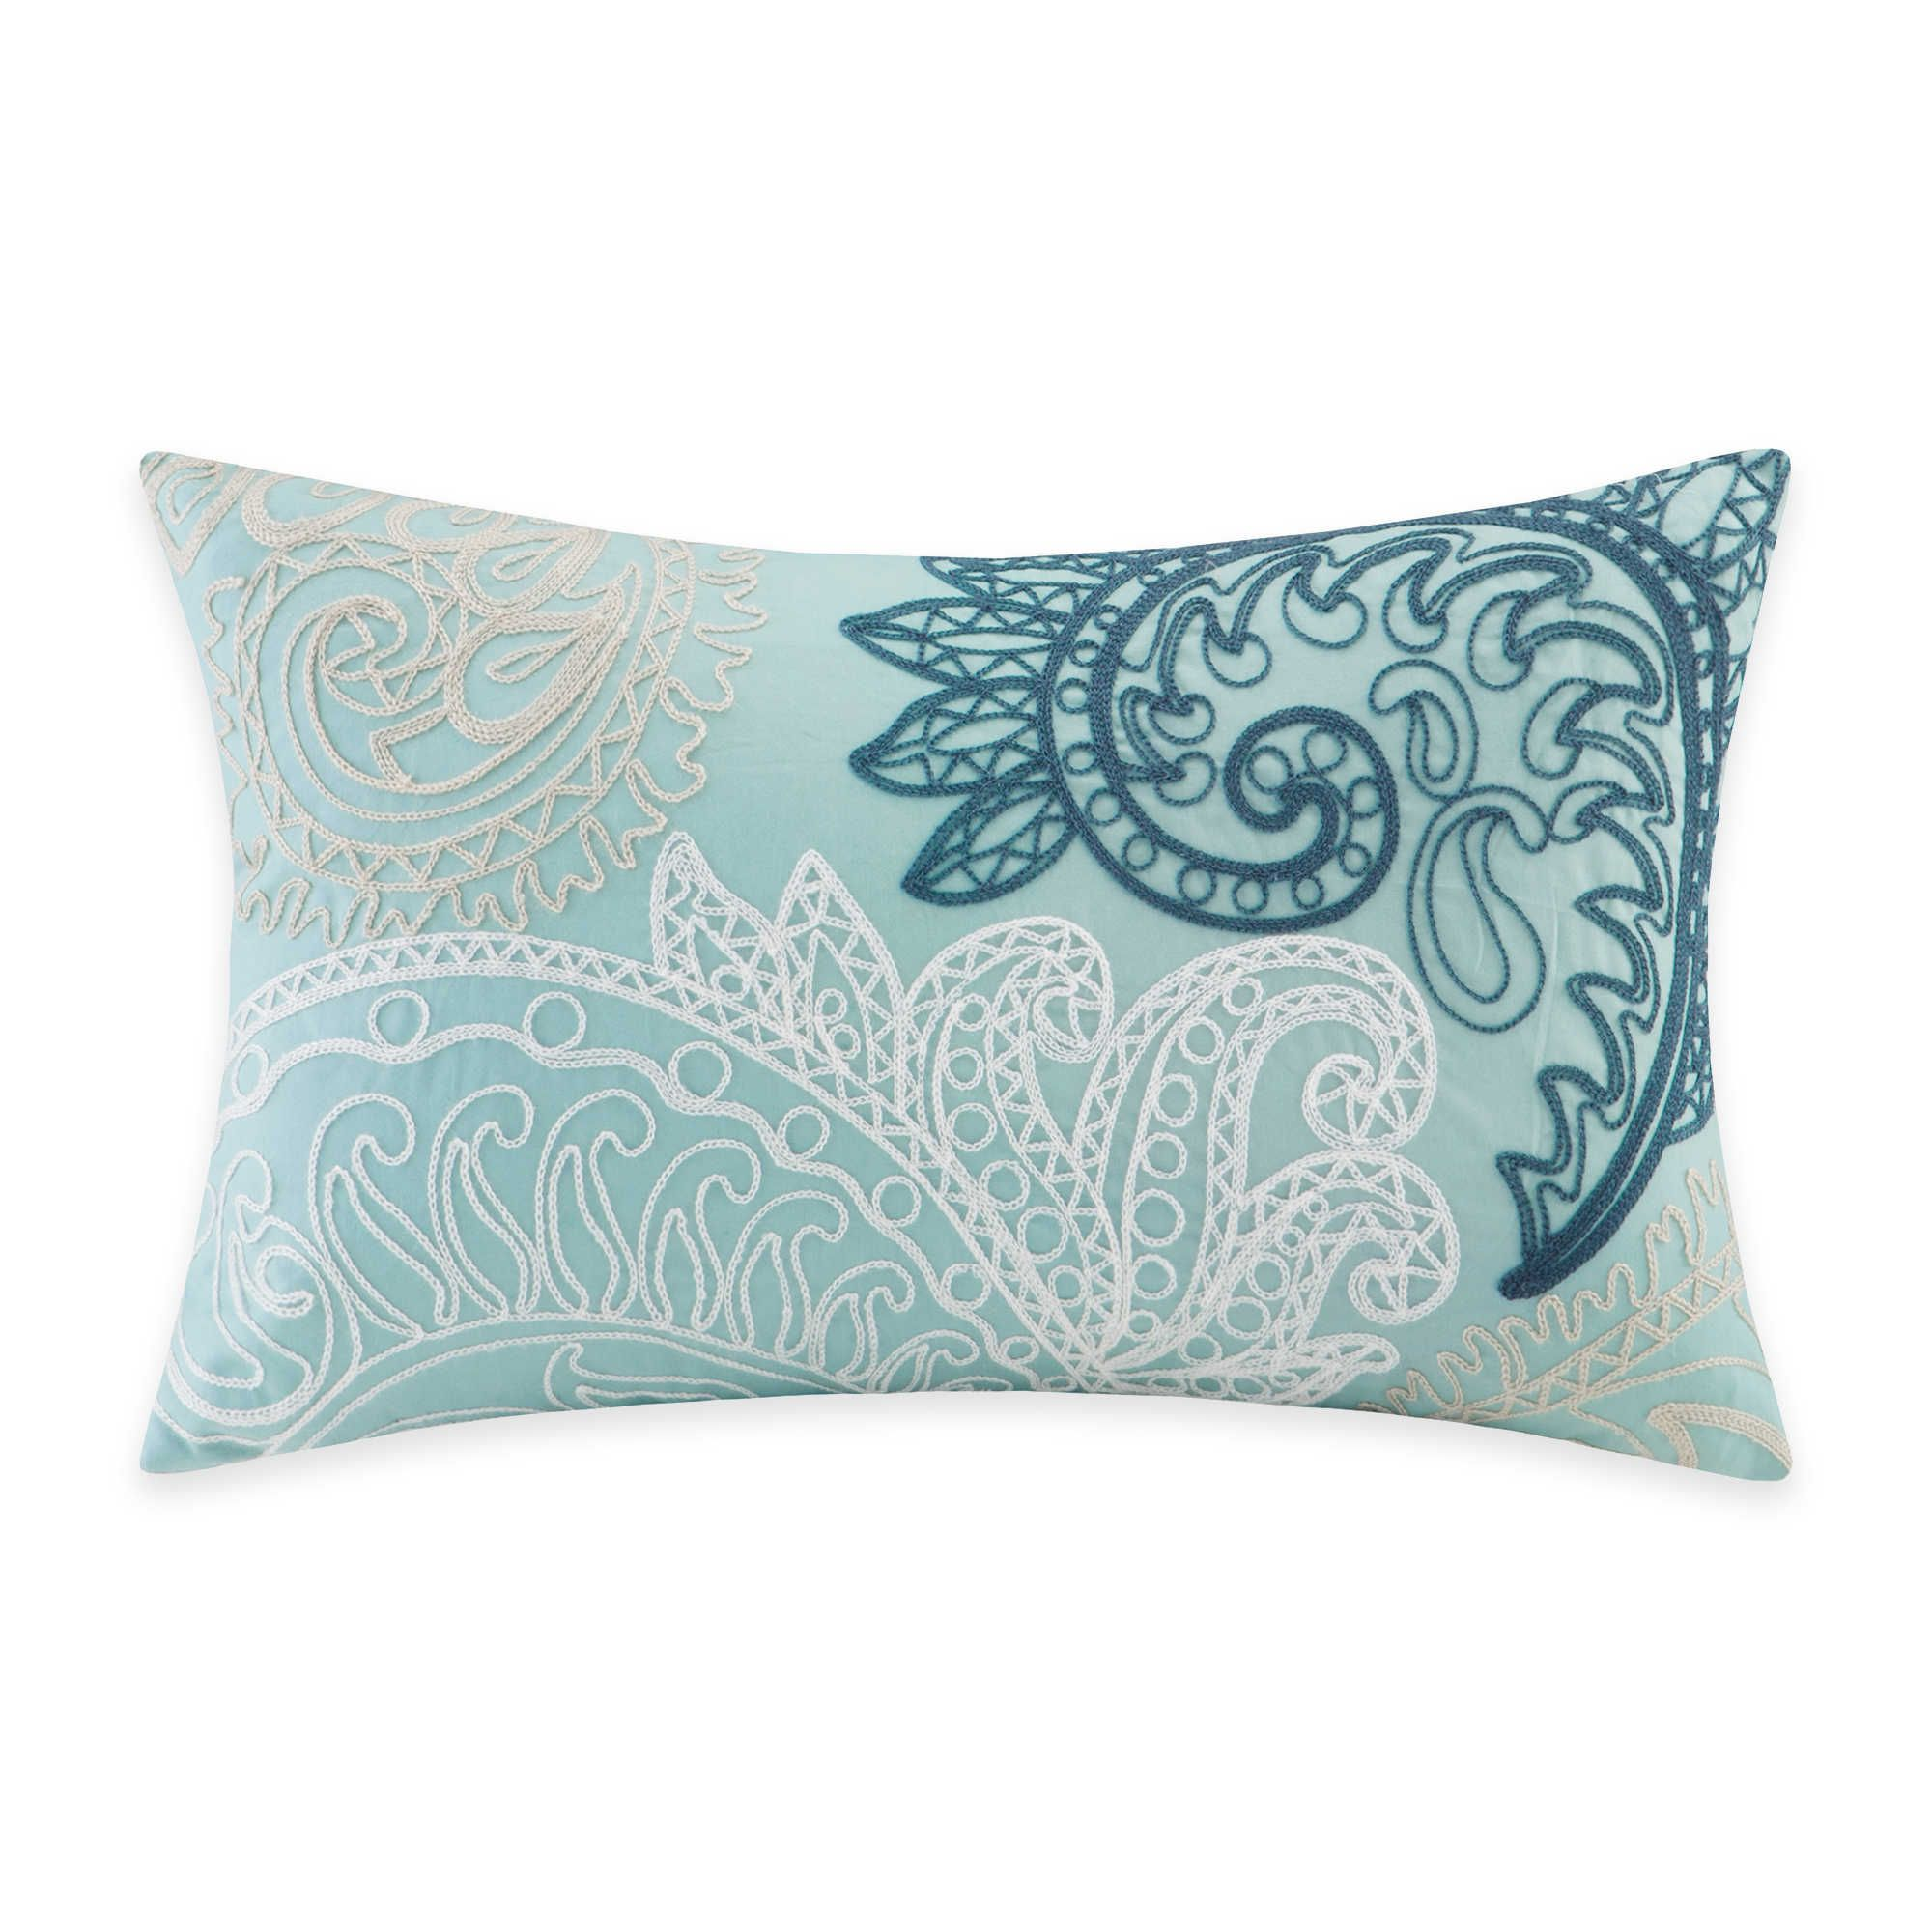 Bed Bath And Beyond Decorative Pillows Stunning Inkivy Mira Embroidered Oblong Throw Pillow In Blue  Bed Bath And Decorating Inspiration